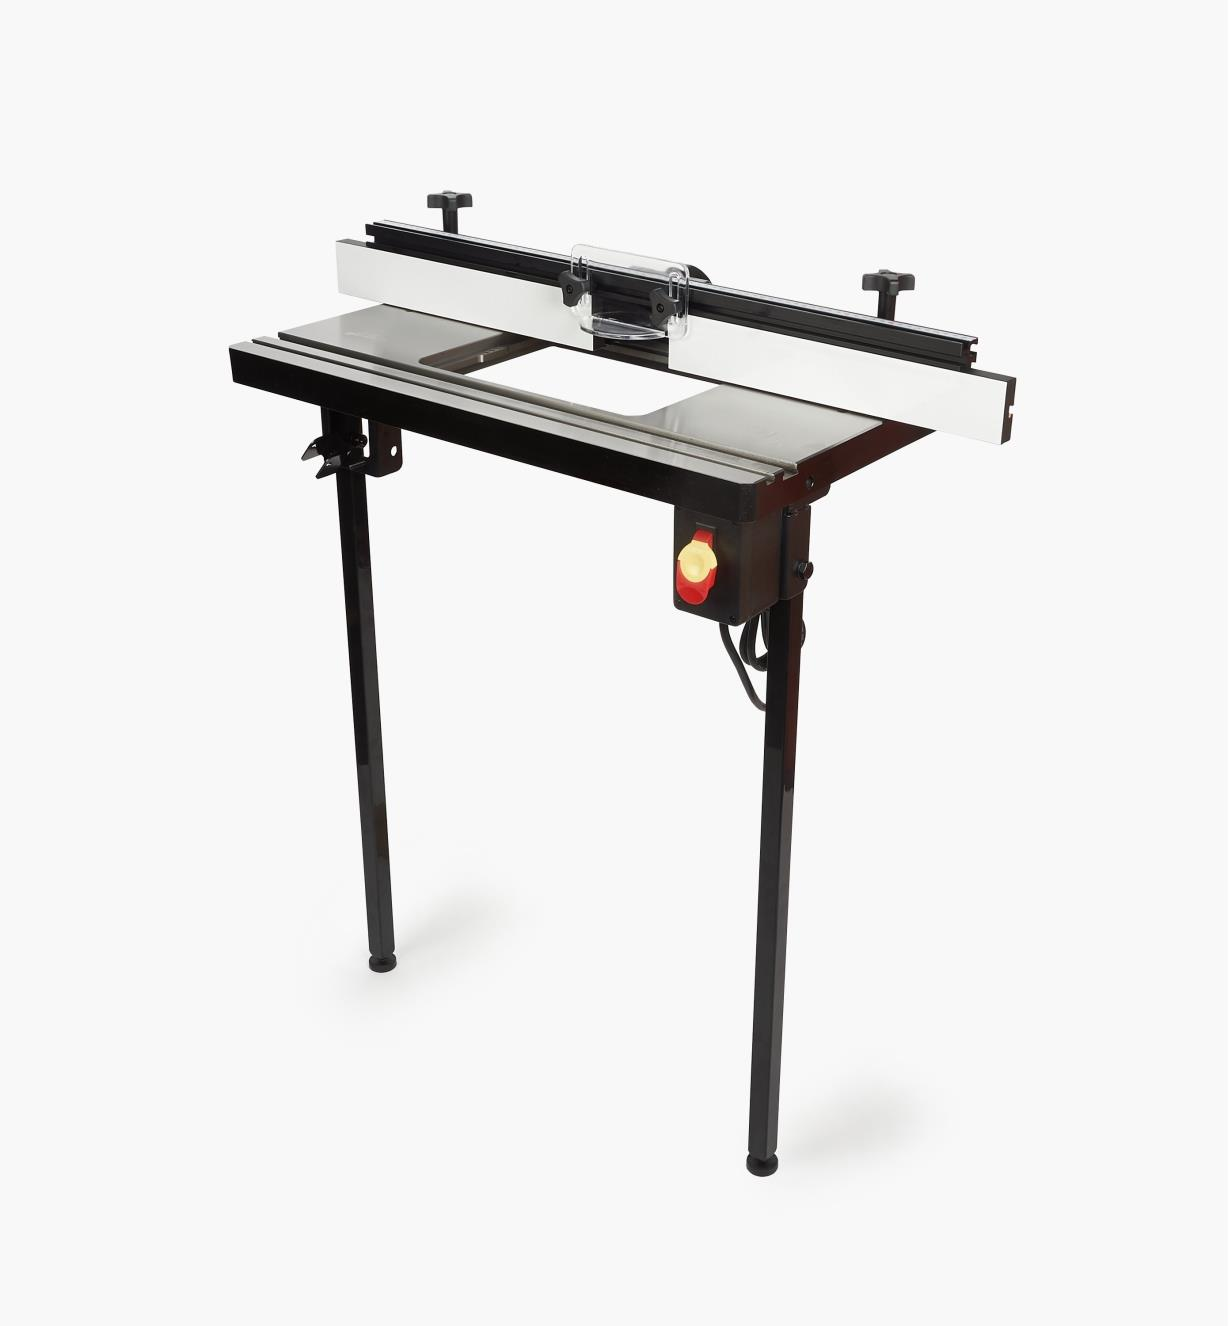 95T2551 - In-Line Router Table for the SawStop Professional Cabinet Saw